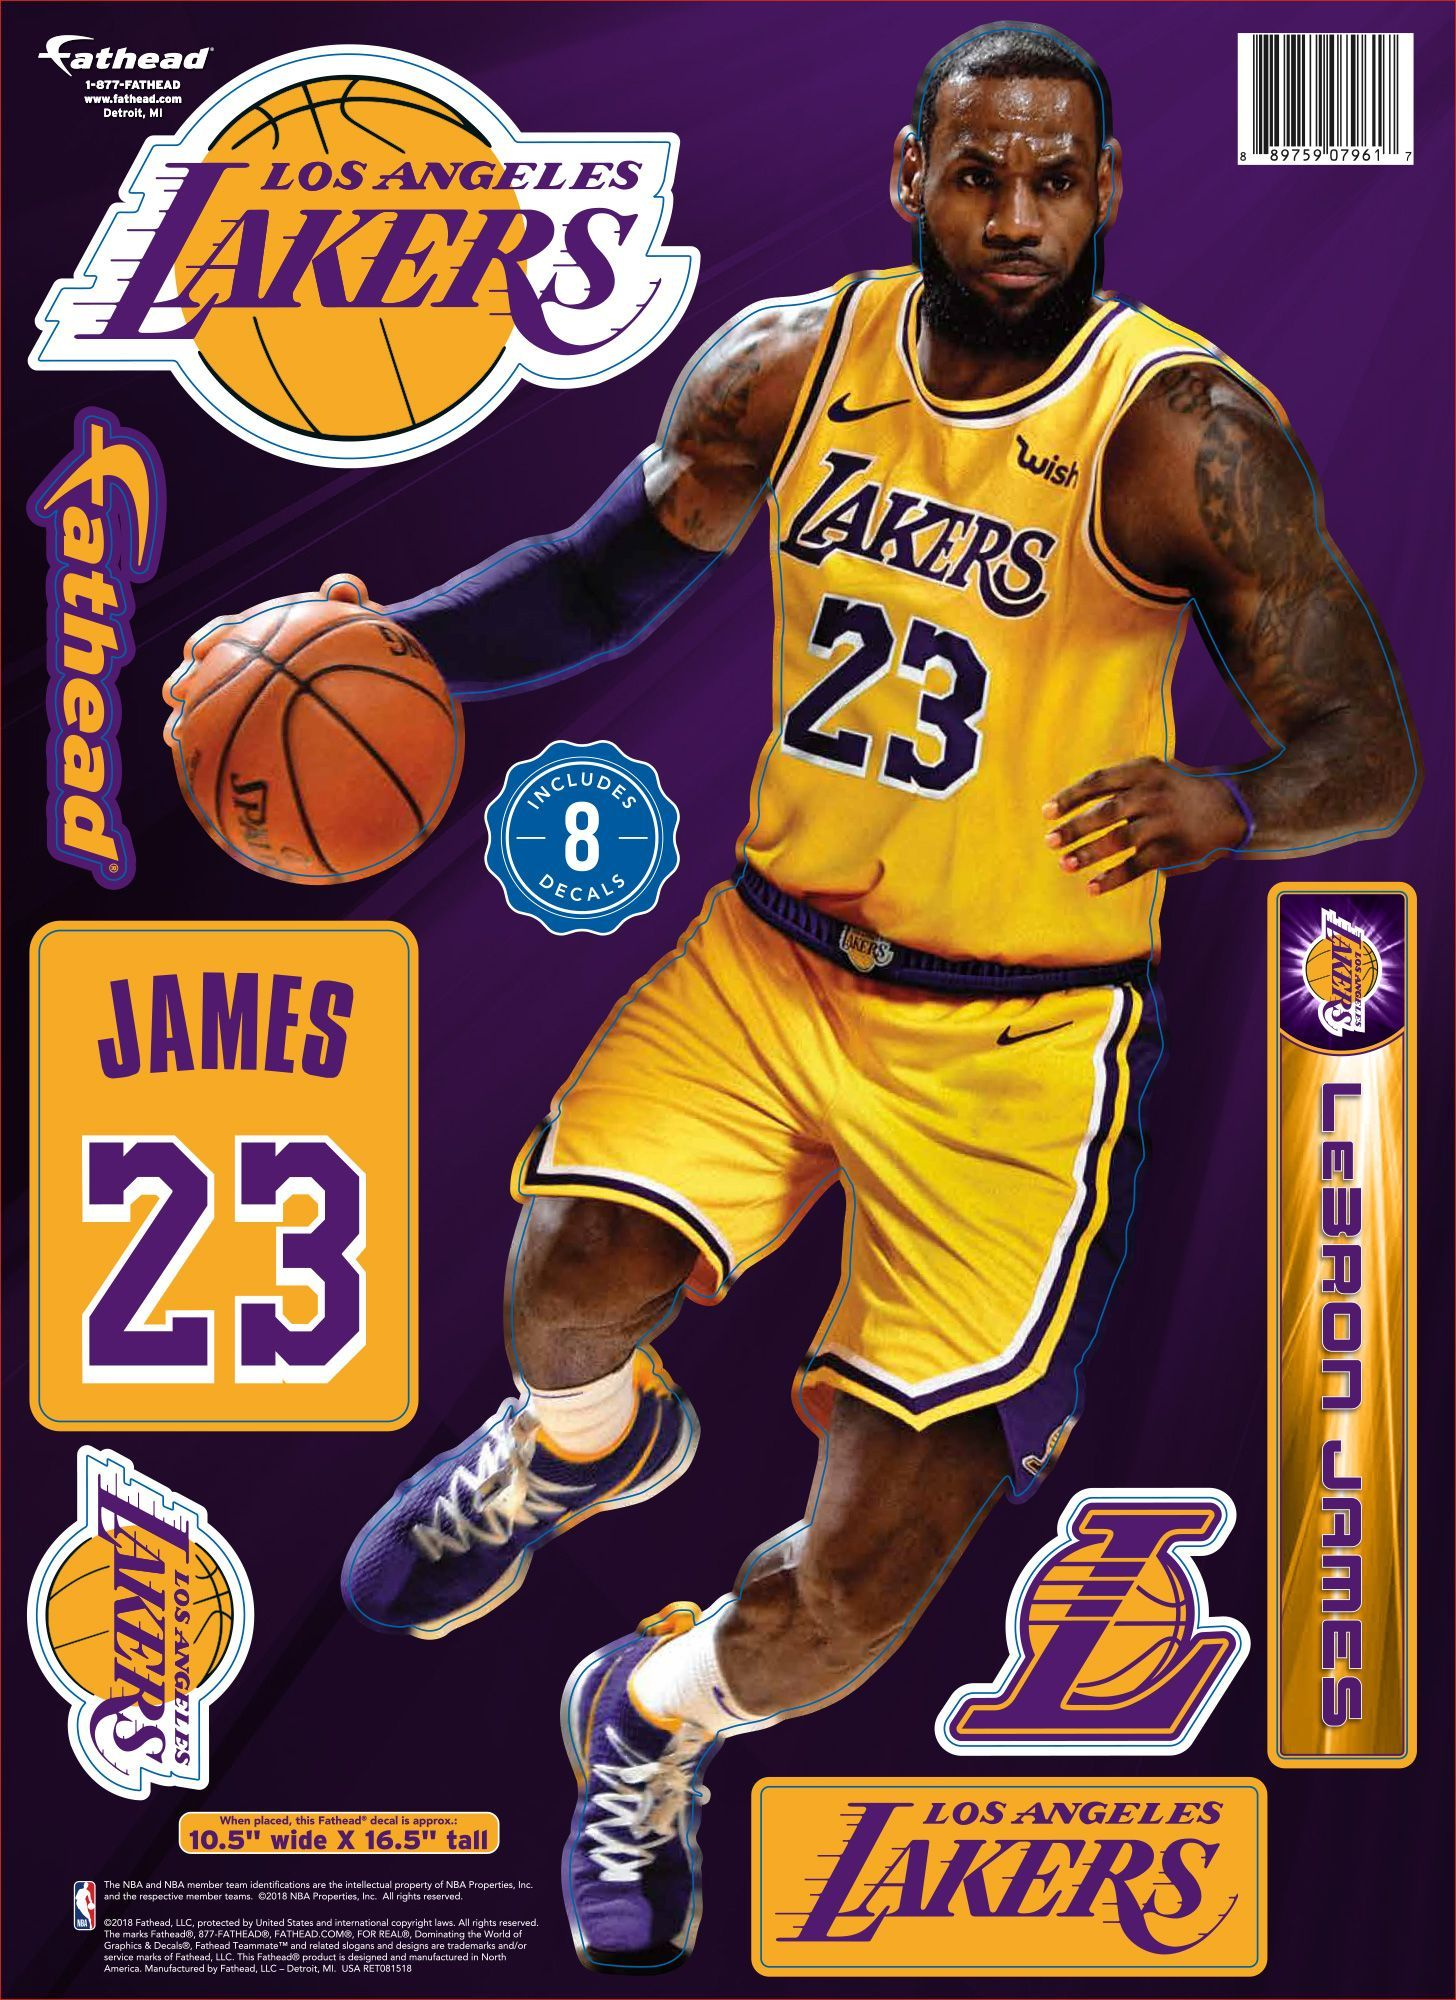 fdb5d9ed2 Fathead Los Angeles Lakers LeBron James Wall Decal